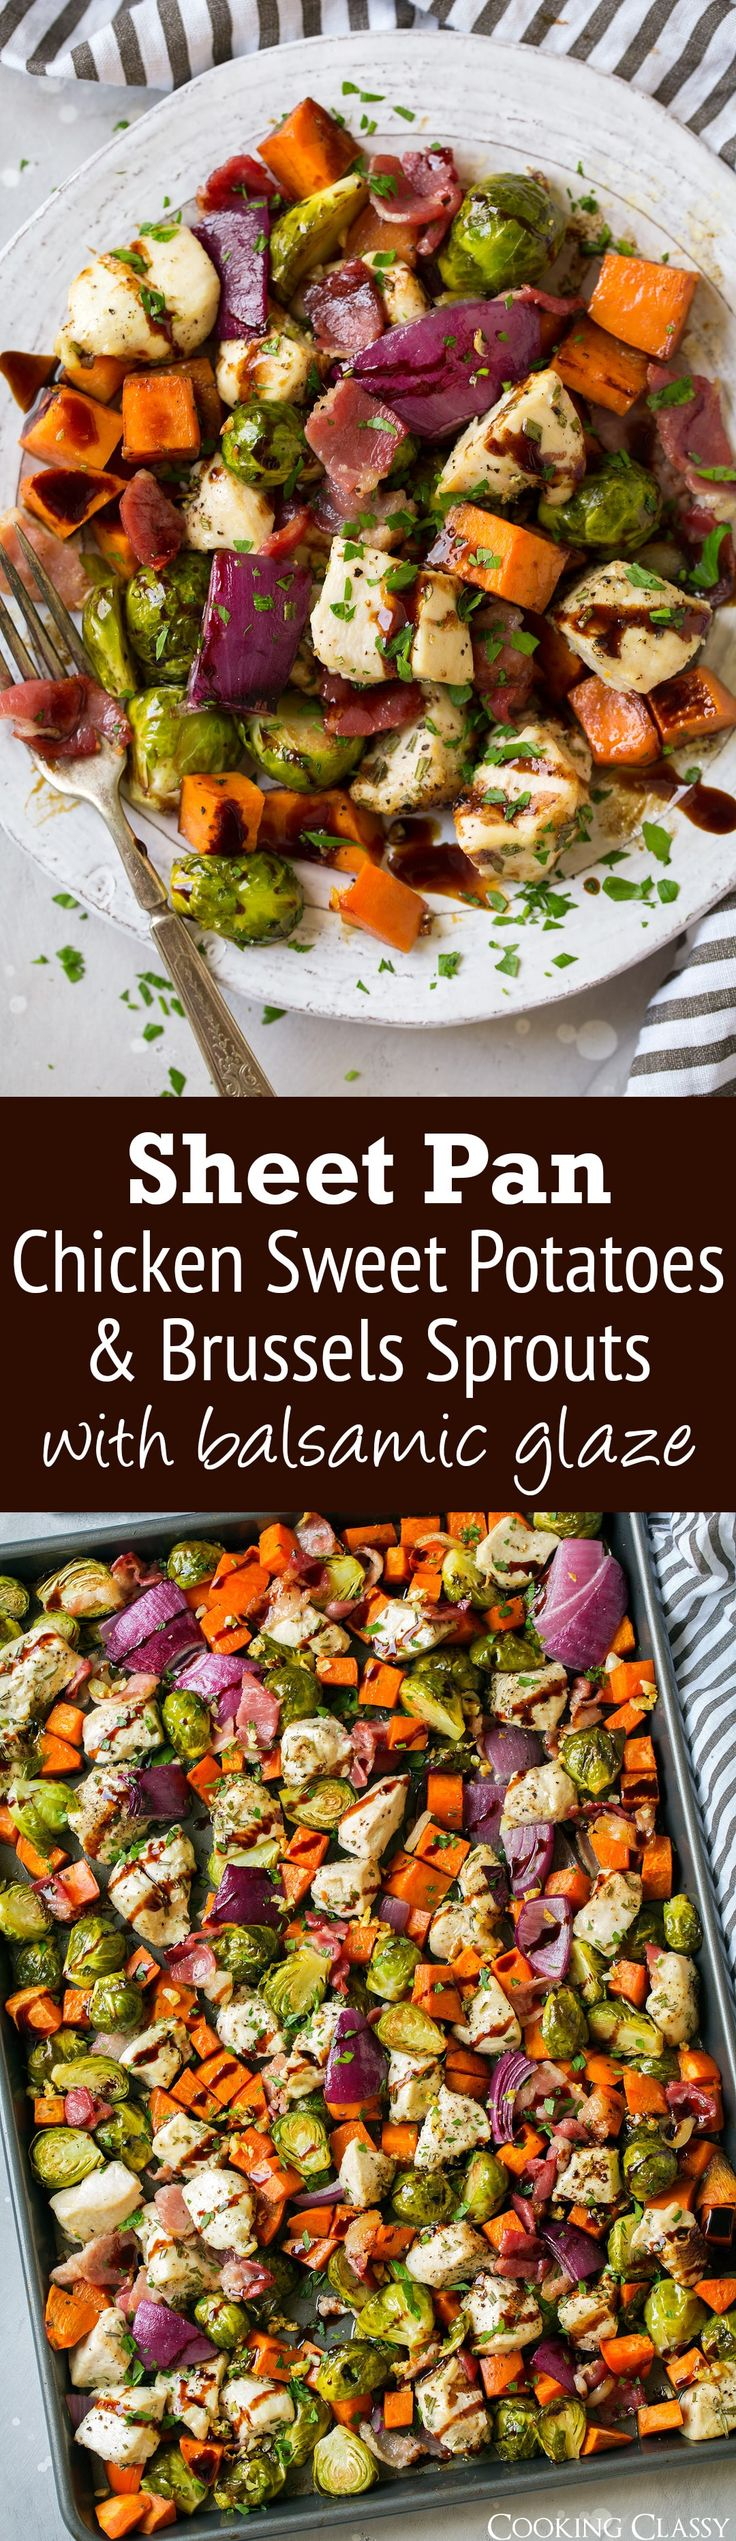 Sheet Pan Chicken Sweet Potatoes and Brussels Sprouts with Bacon and Balsamic Glaze